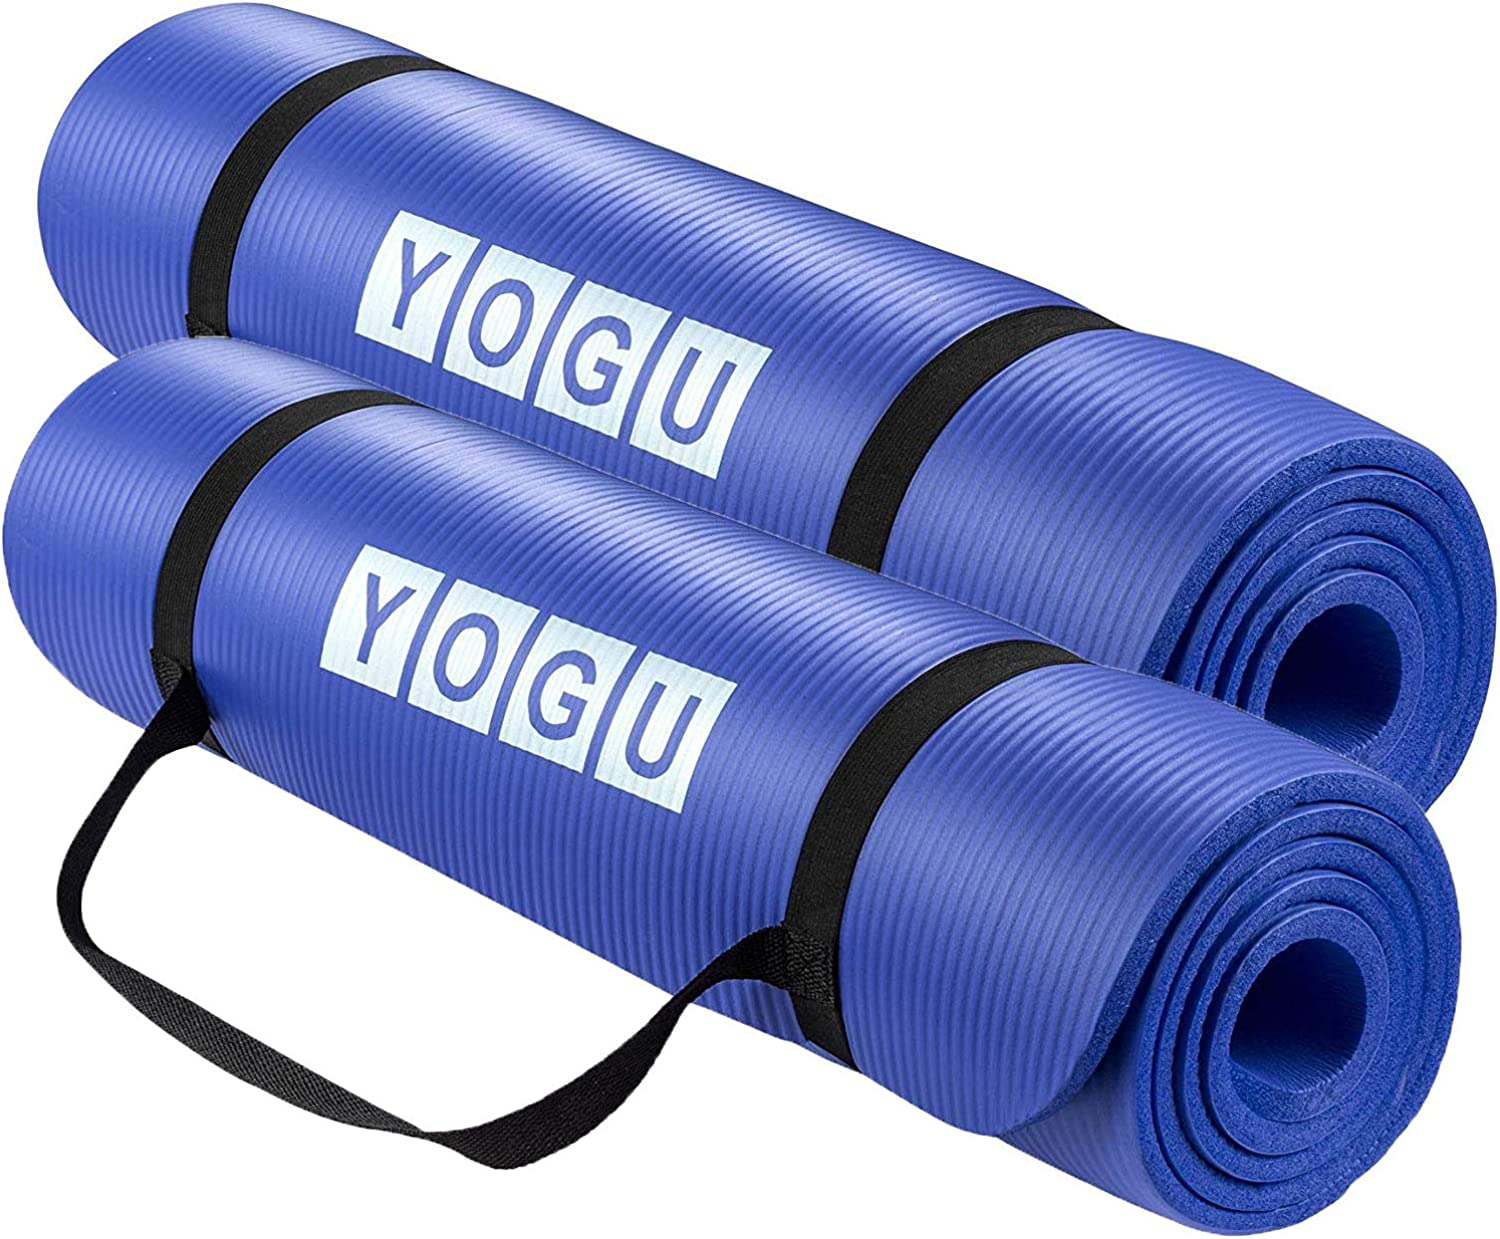 Yoga Mat 1 2 Inch Thick MultiPurpose Lightweight Pilates Fitness Mats Durable Washable NonSlip Surfaces SweatProof Gym Workout Exercise Yoga Mat with Carrier Strap  6 FT x 2 FT (blueee  2 PK)